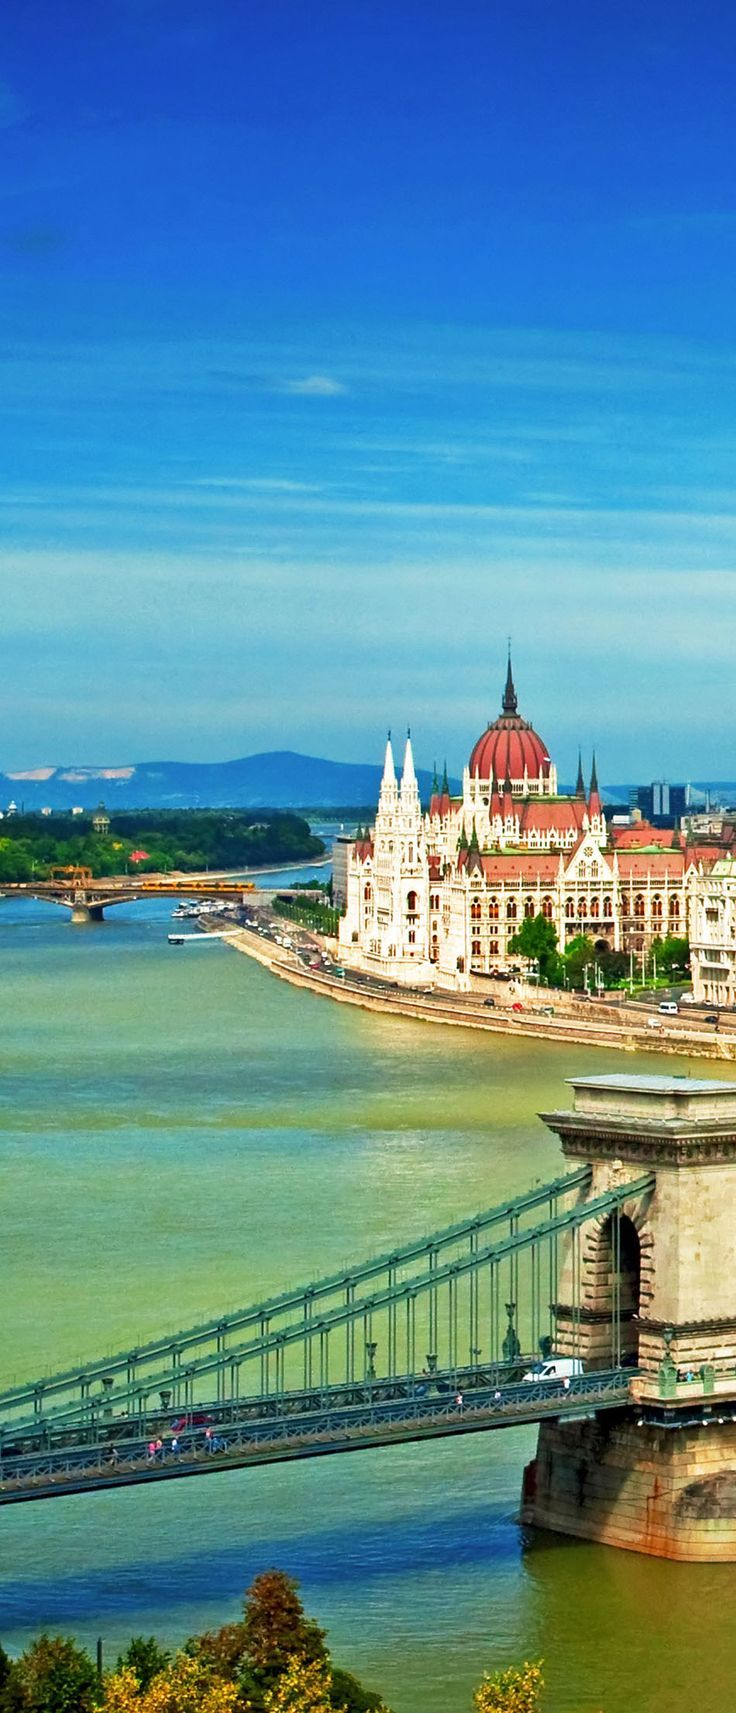 Nice view on Budapest, Hungary   Amazing Photography Of Cities and Famous Landmarks From Around The World